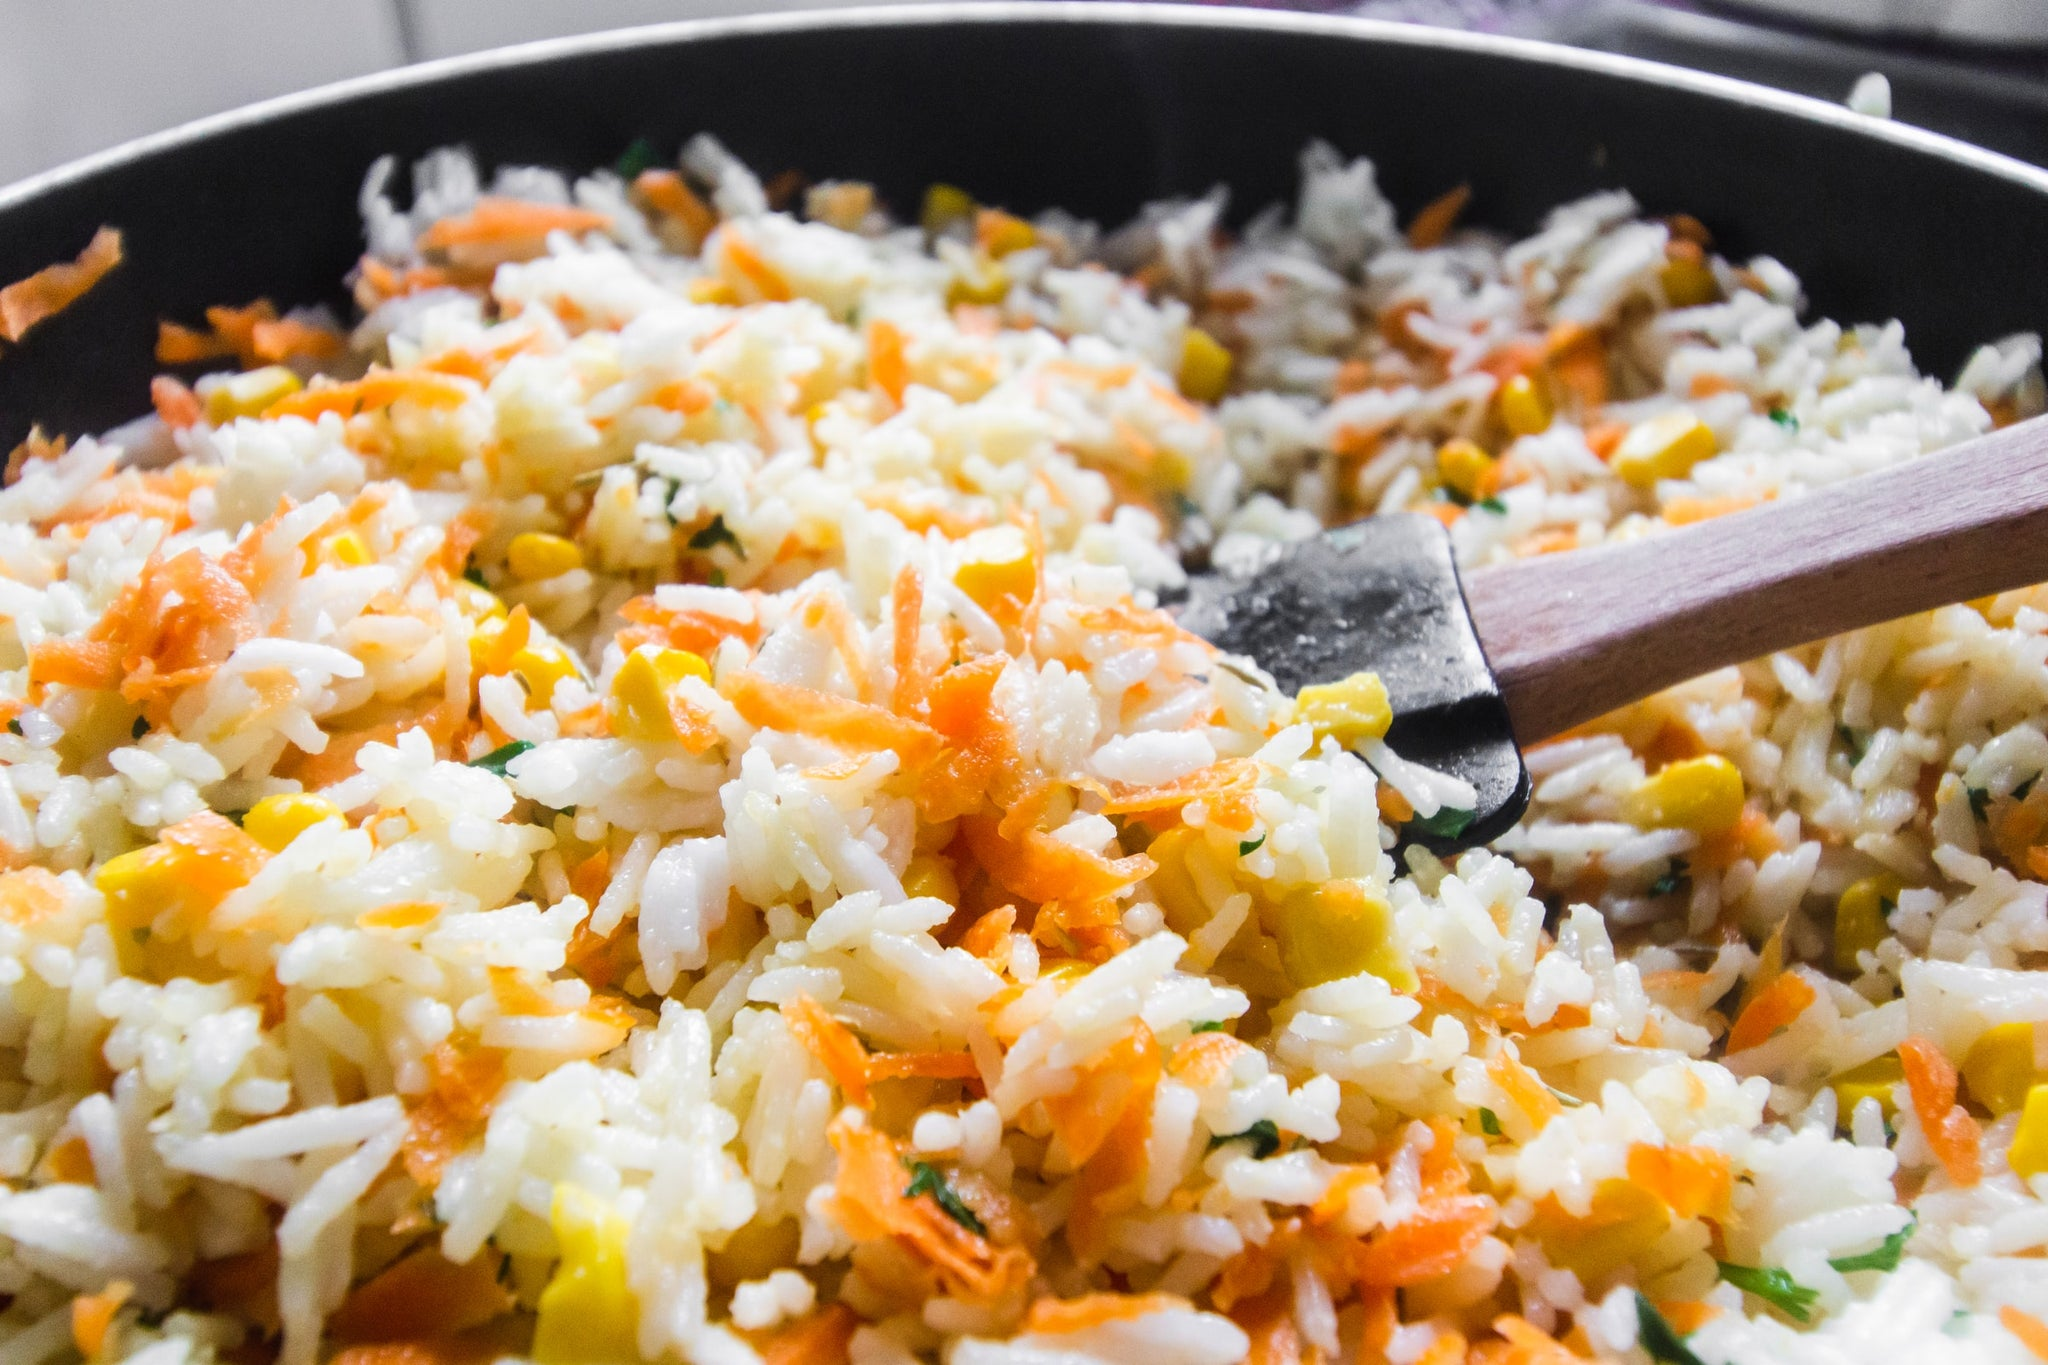 Enjoy the comforts of a Japanese fried rice